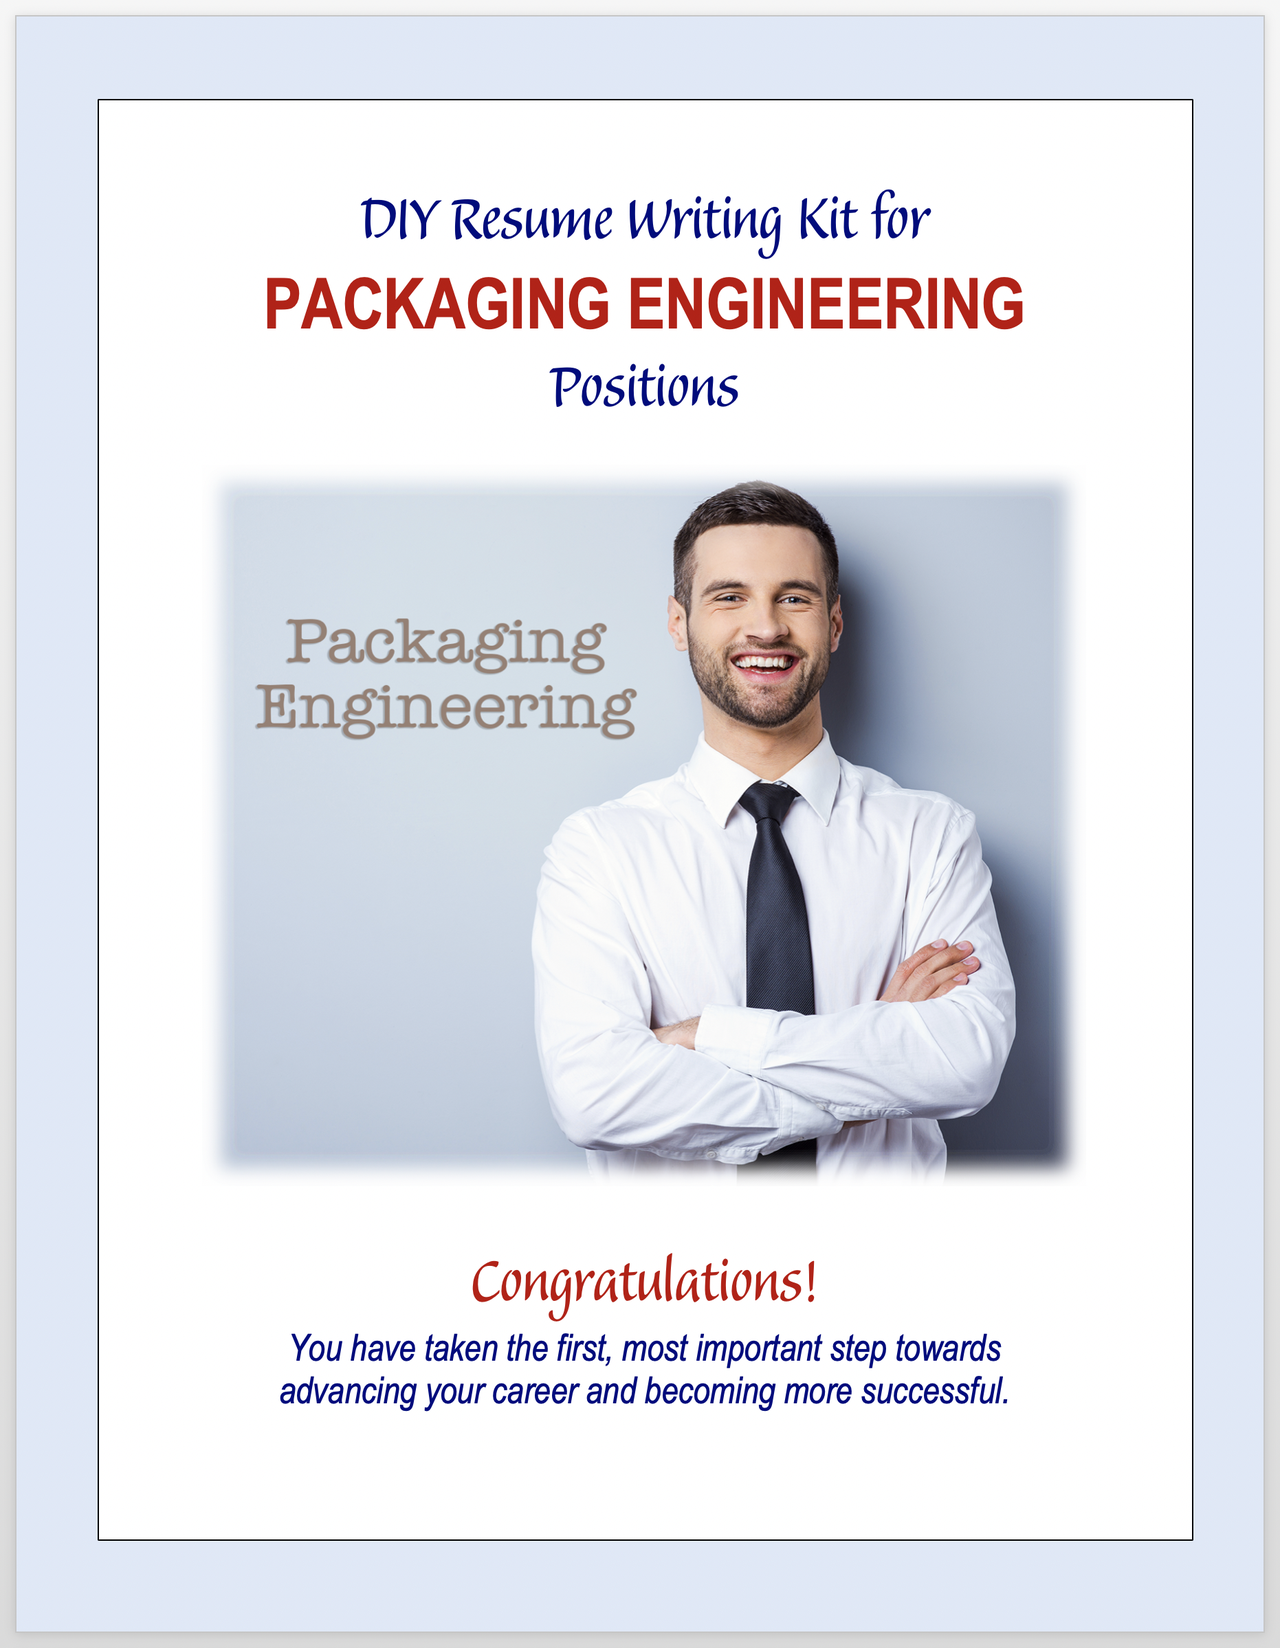 packaging engineering.png